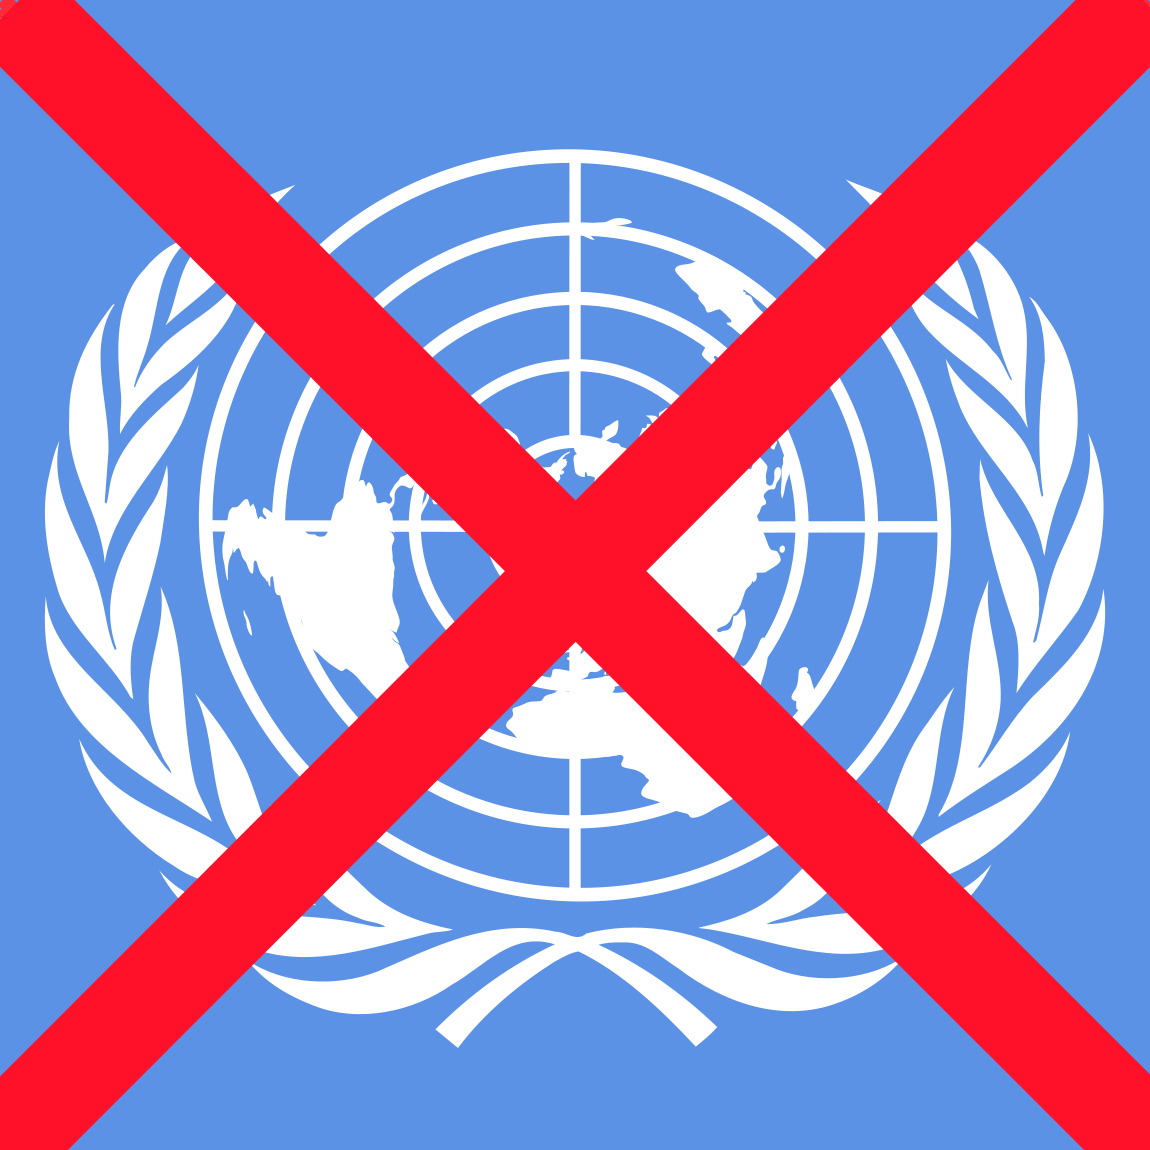 United Nations Seeks to Violate Sovereignty